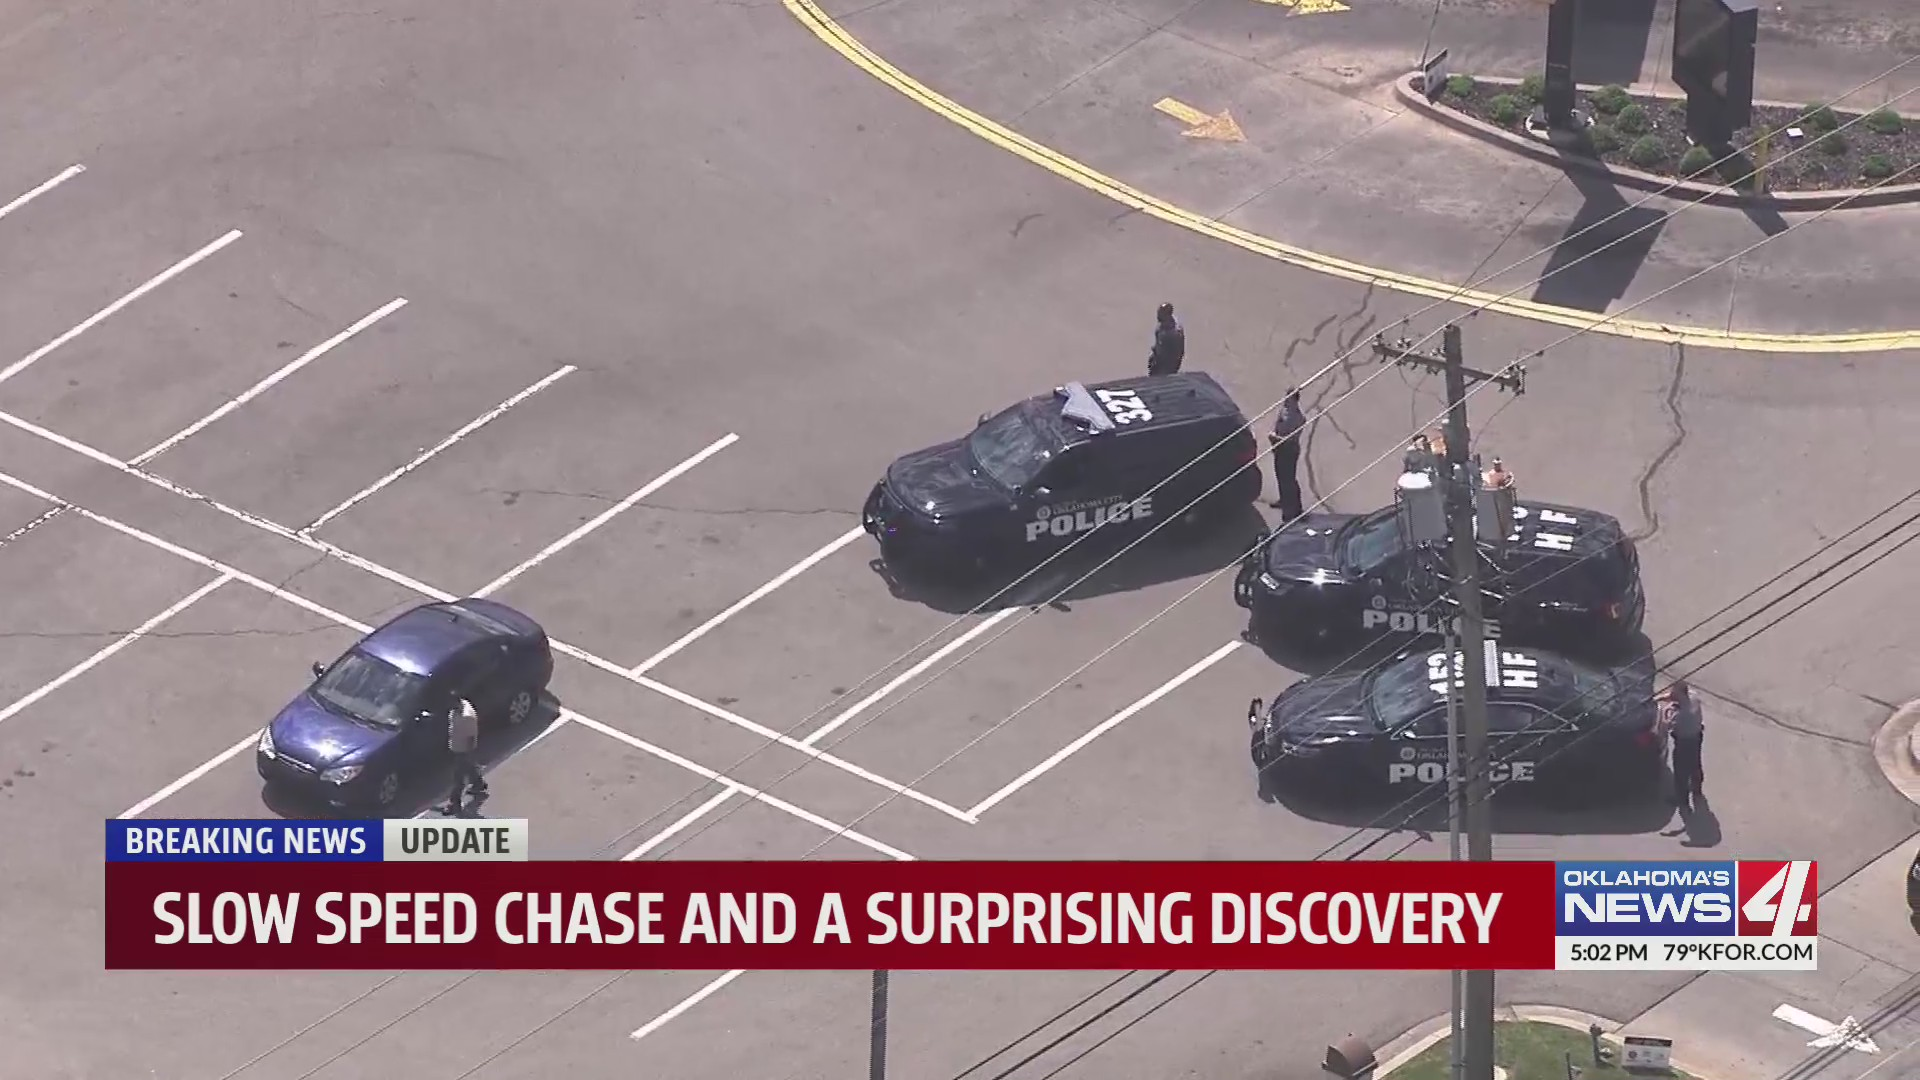 One person arrested after slow-speed chase, police find weapons in car